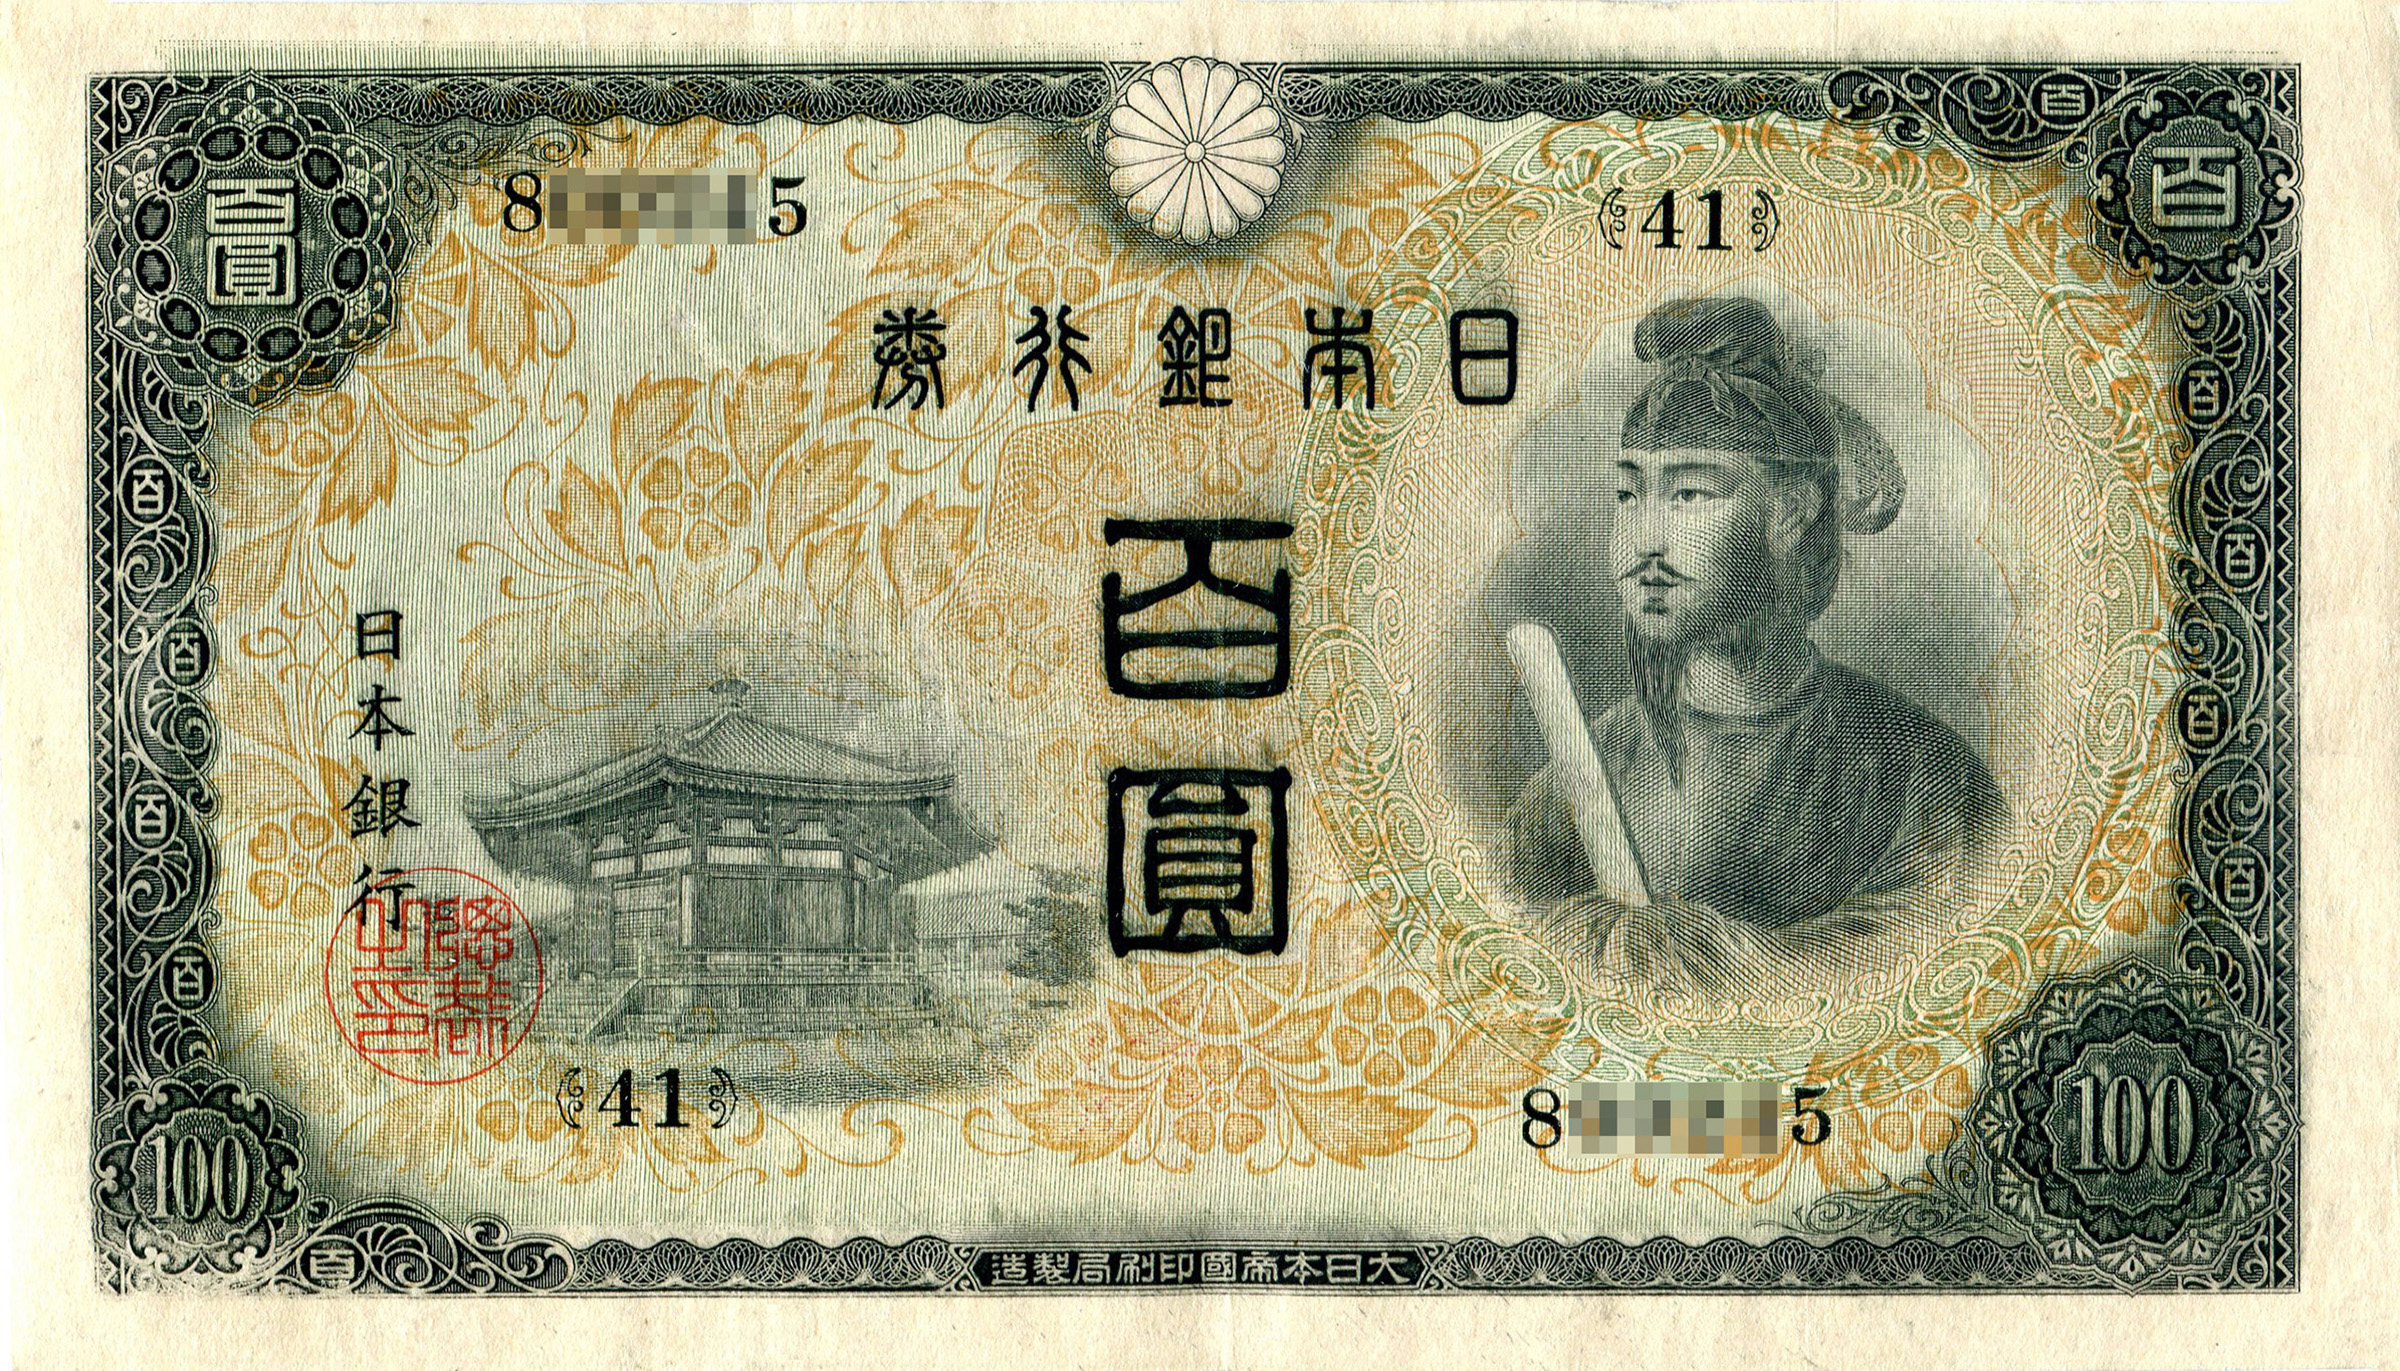 [Bild: Series_Yi_100_Yen_Bank_of_Japan_note_-_front.jpg]